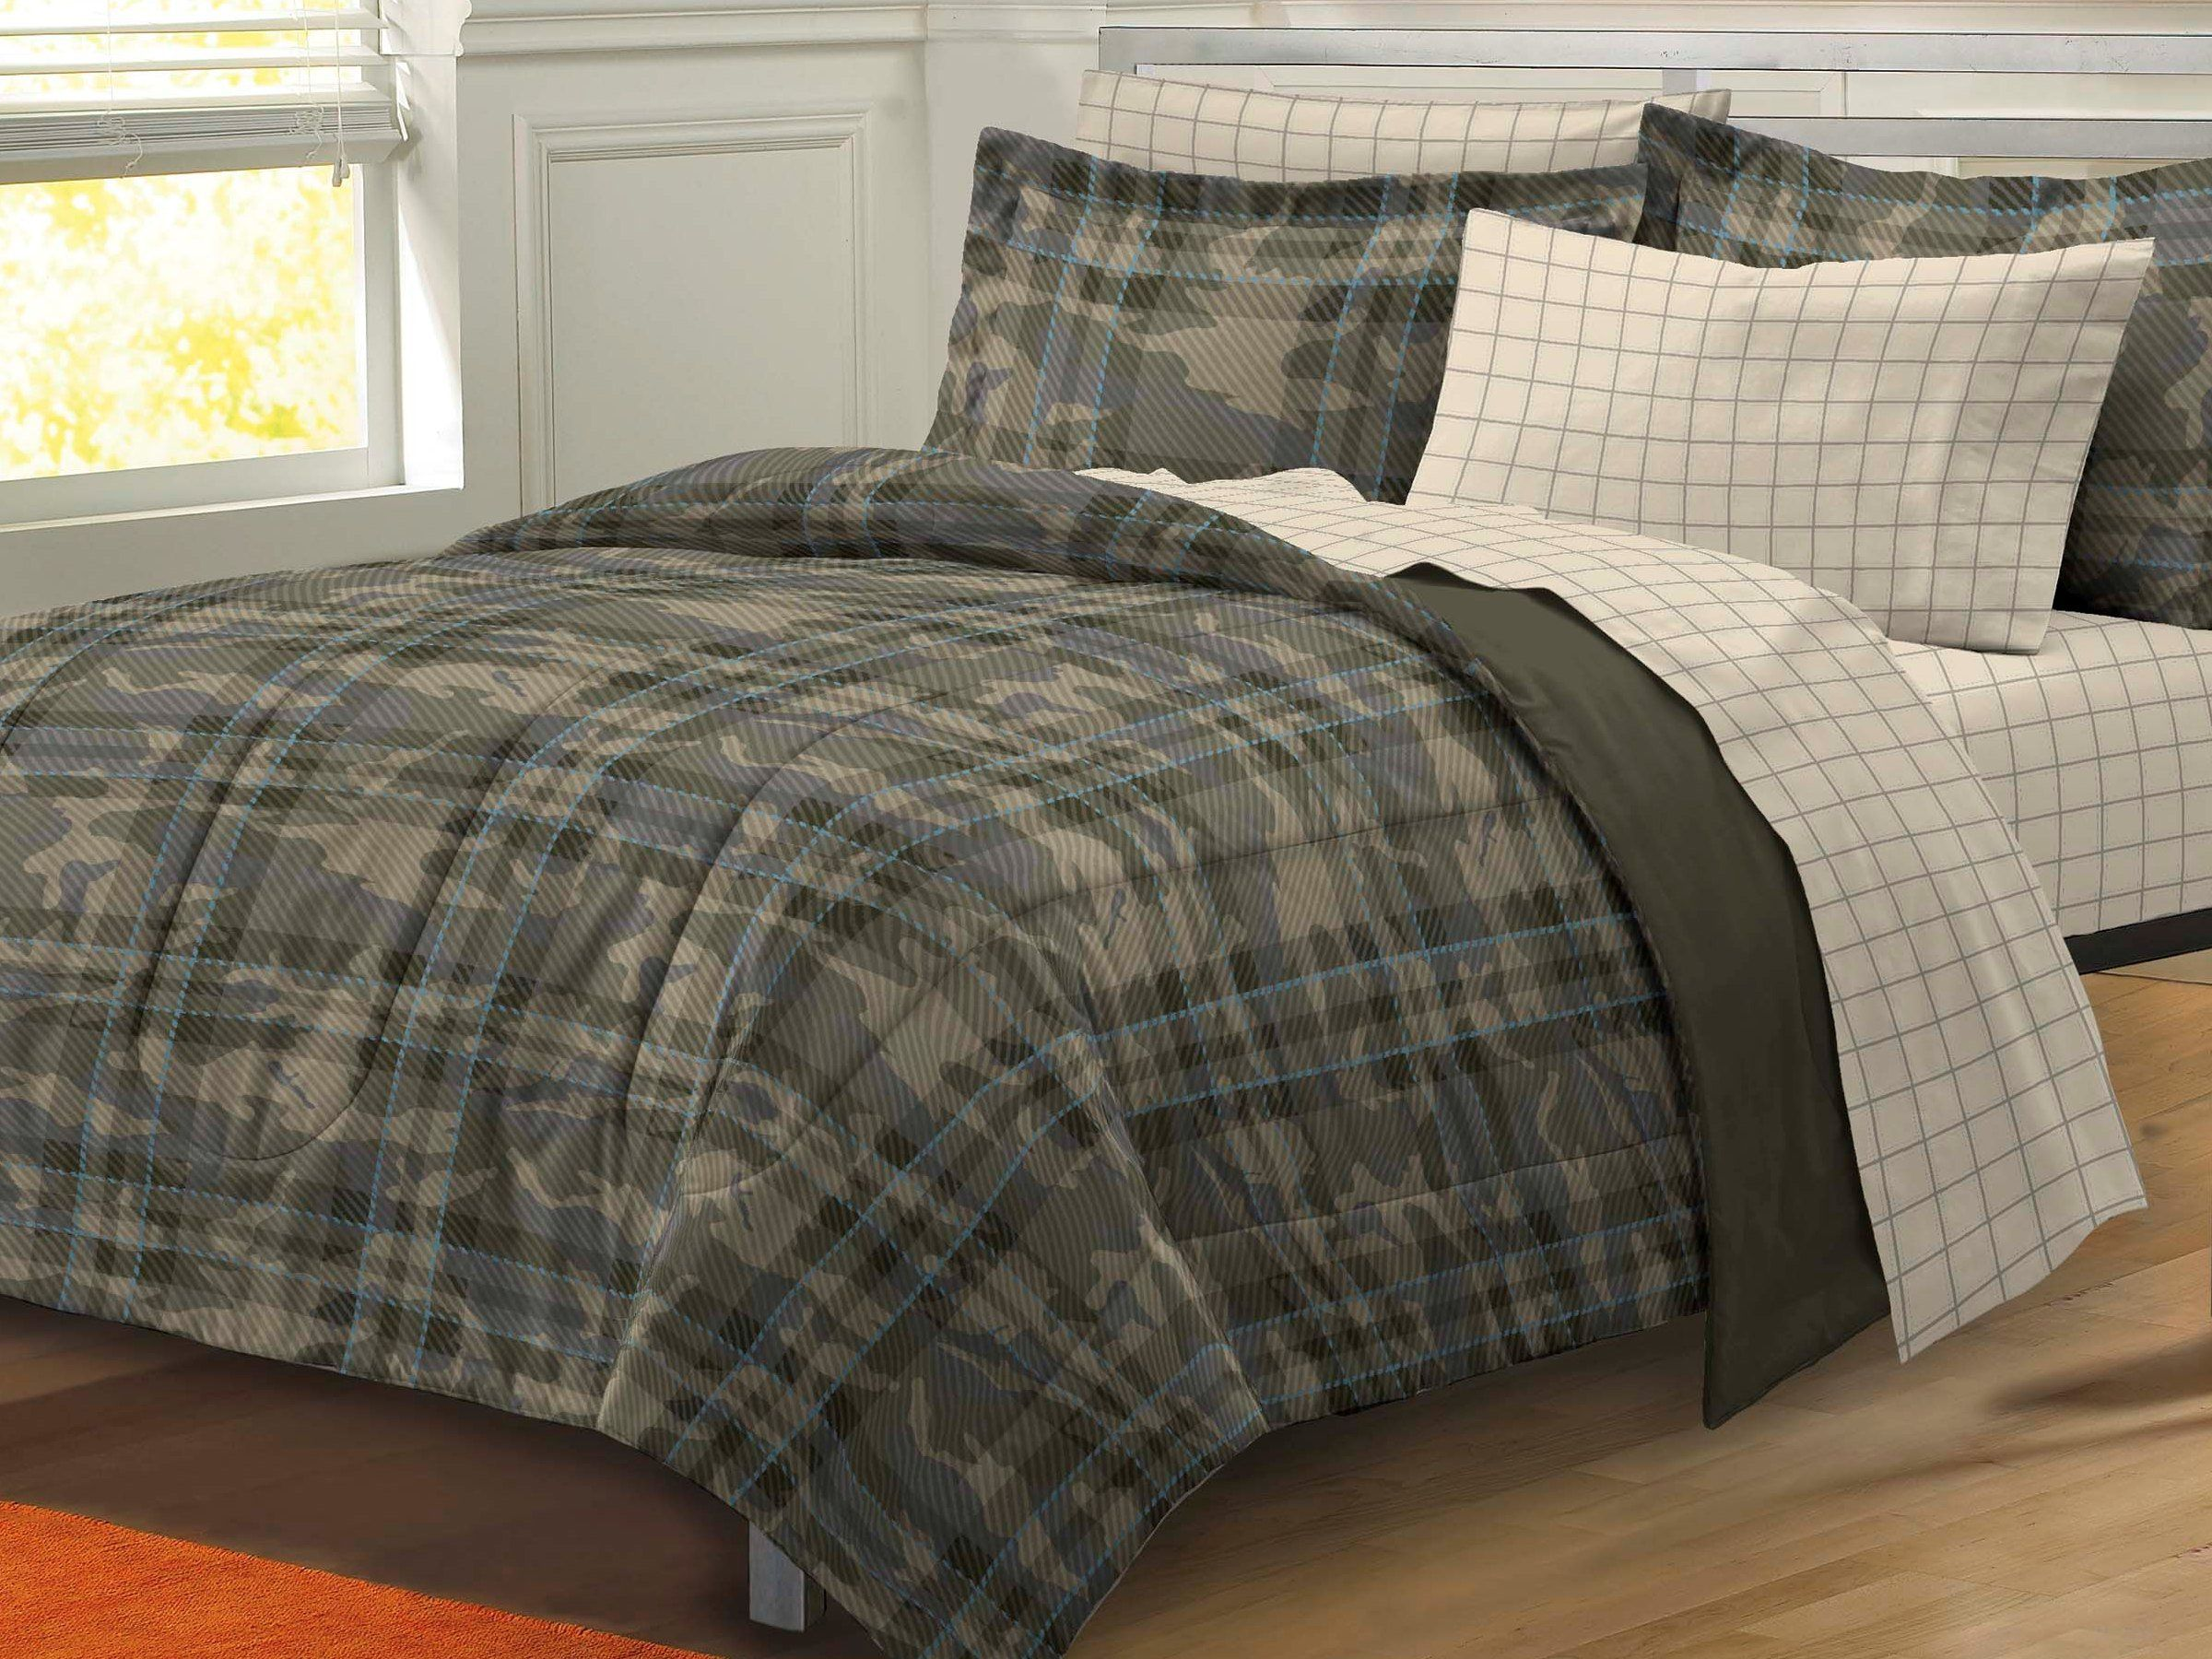 My Room Camp House Camouflage Ultra Soft Microfiber Boys forter